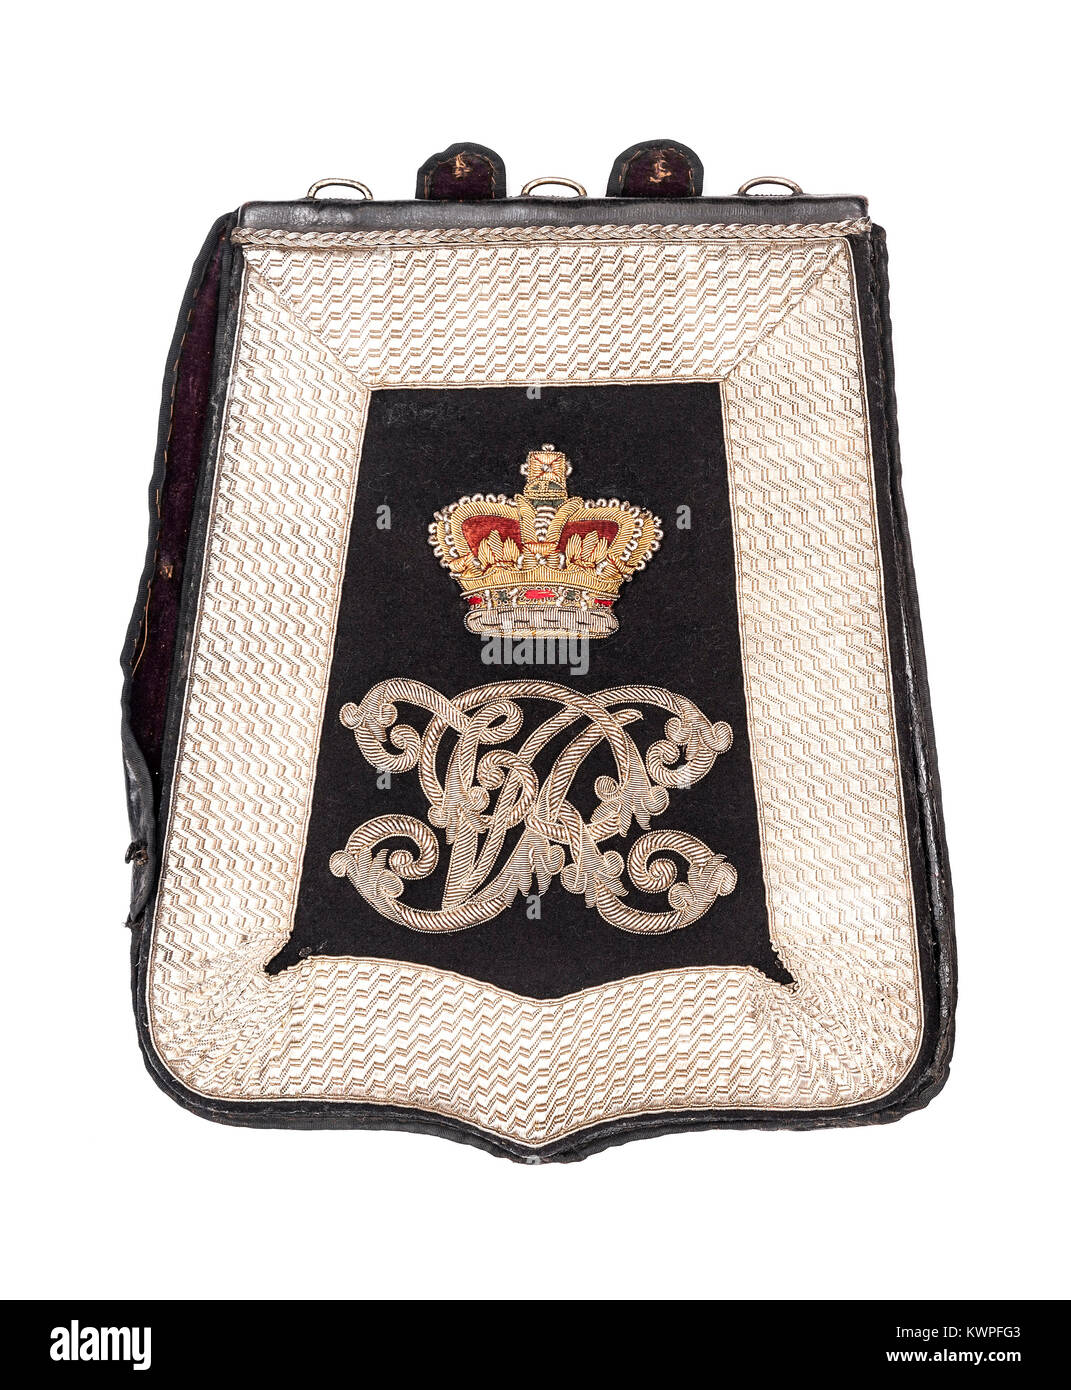 Derbyshire Yeomanry officer's full dress embroidered blue cloth sabretache from the Victorian era. - Stock Image